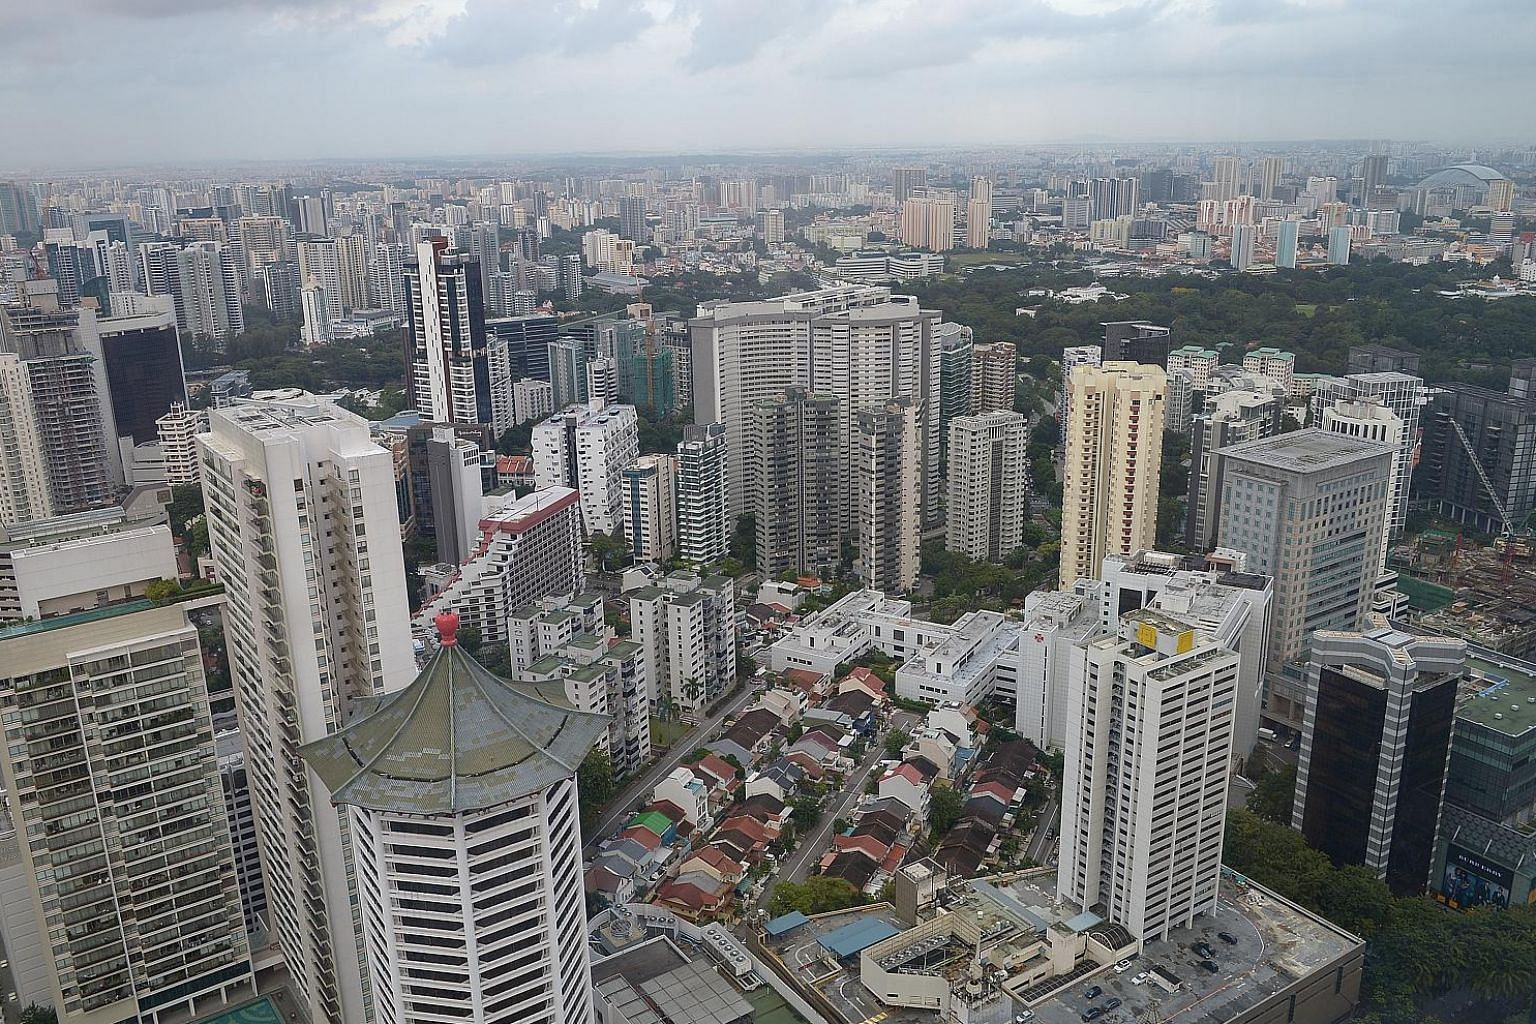 Condo resale prices in the core central region fell 0.7 per cent, while those in the outside central region retreated 0.4 per cent. Prices in the rest of central region were unchanged from May, according to estimates from SRX Property. ST FILE PHOTO